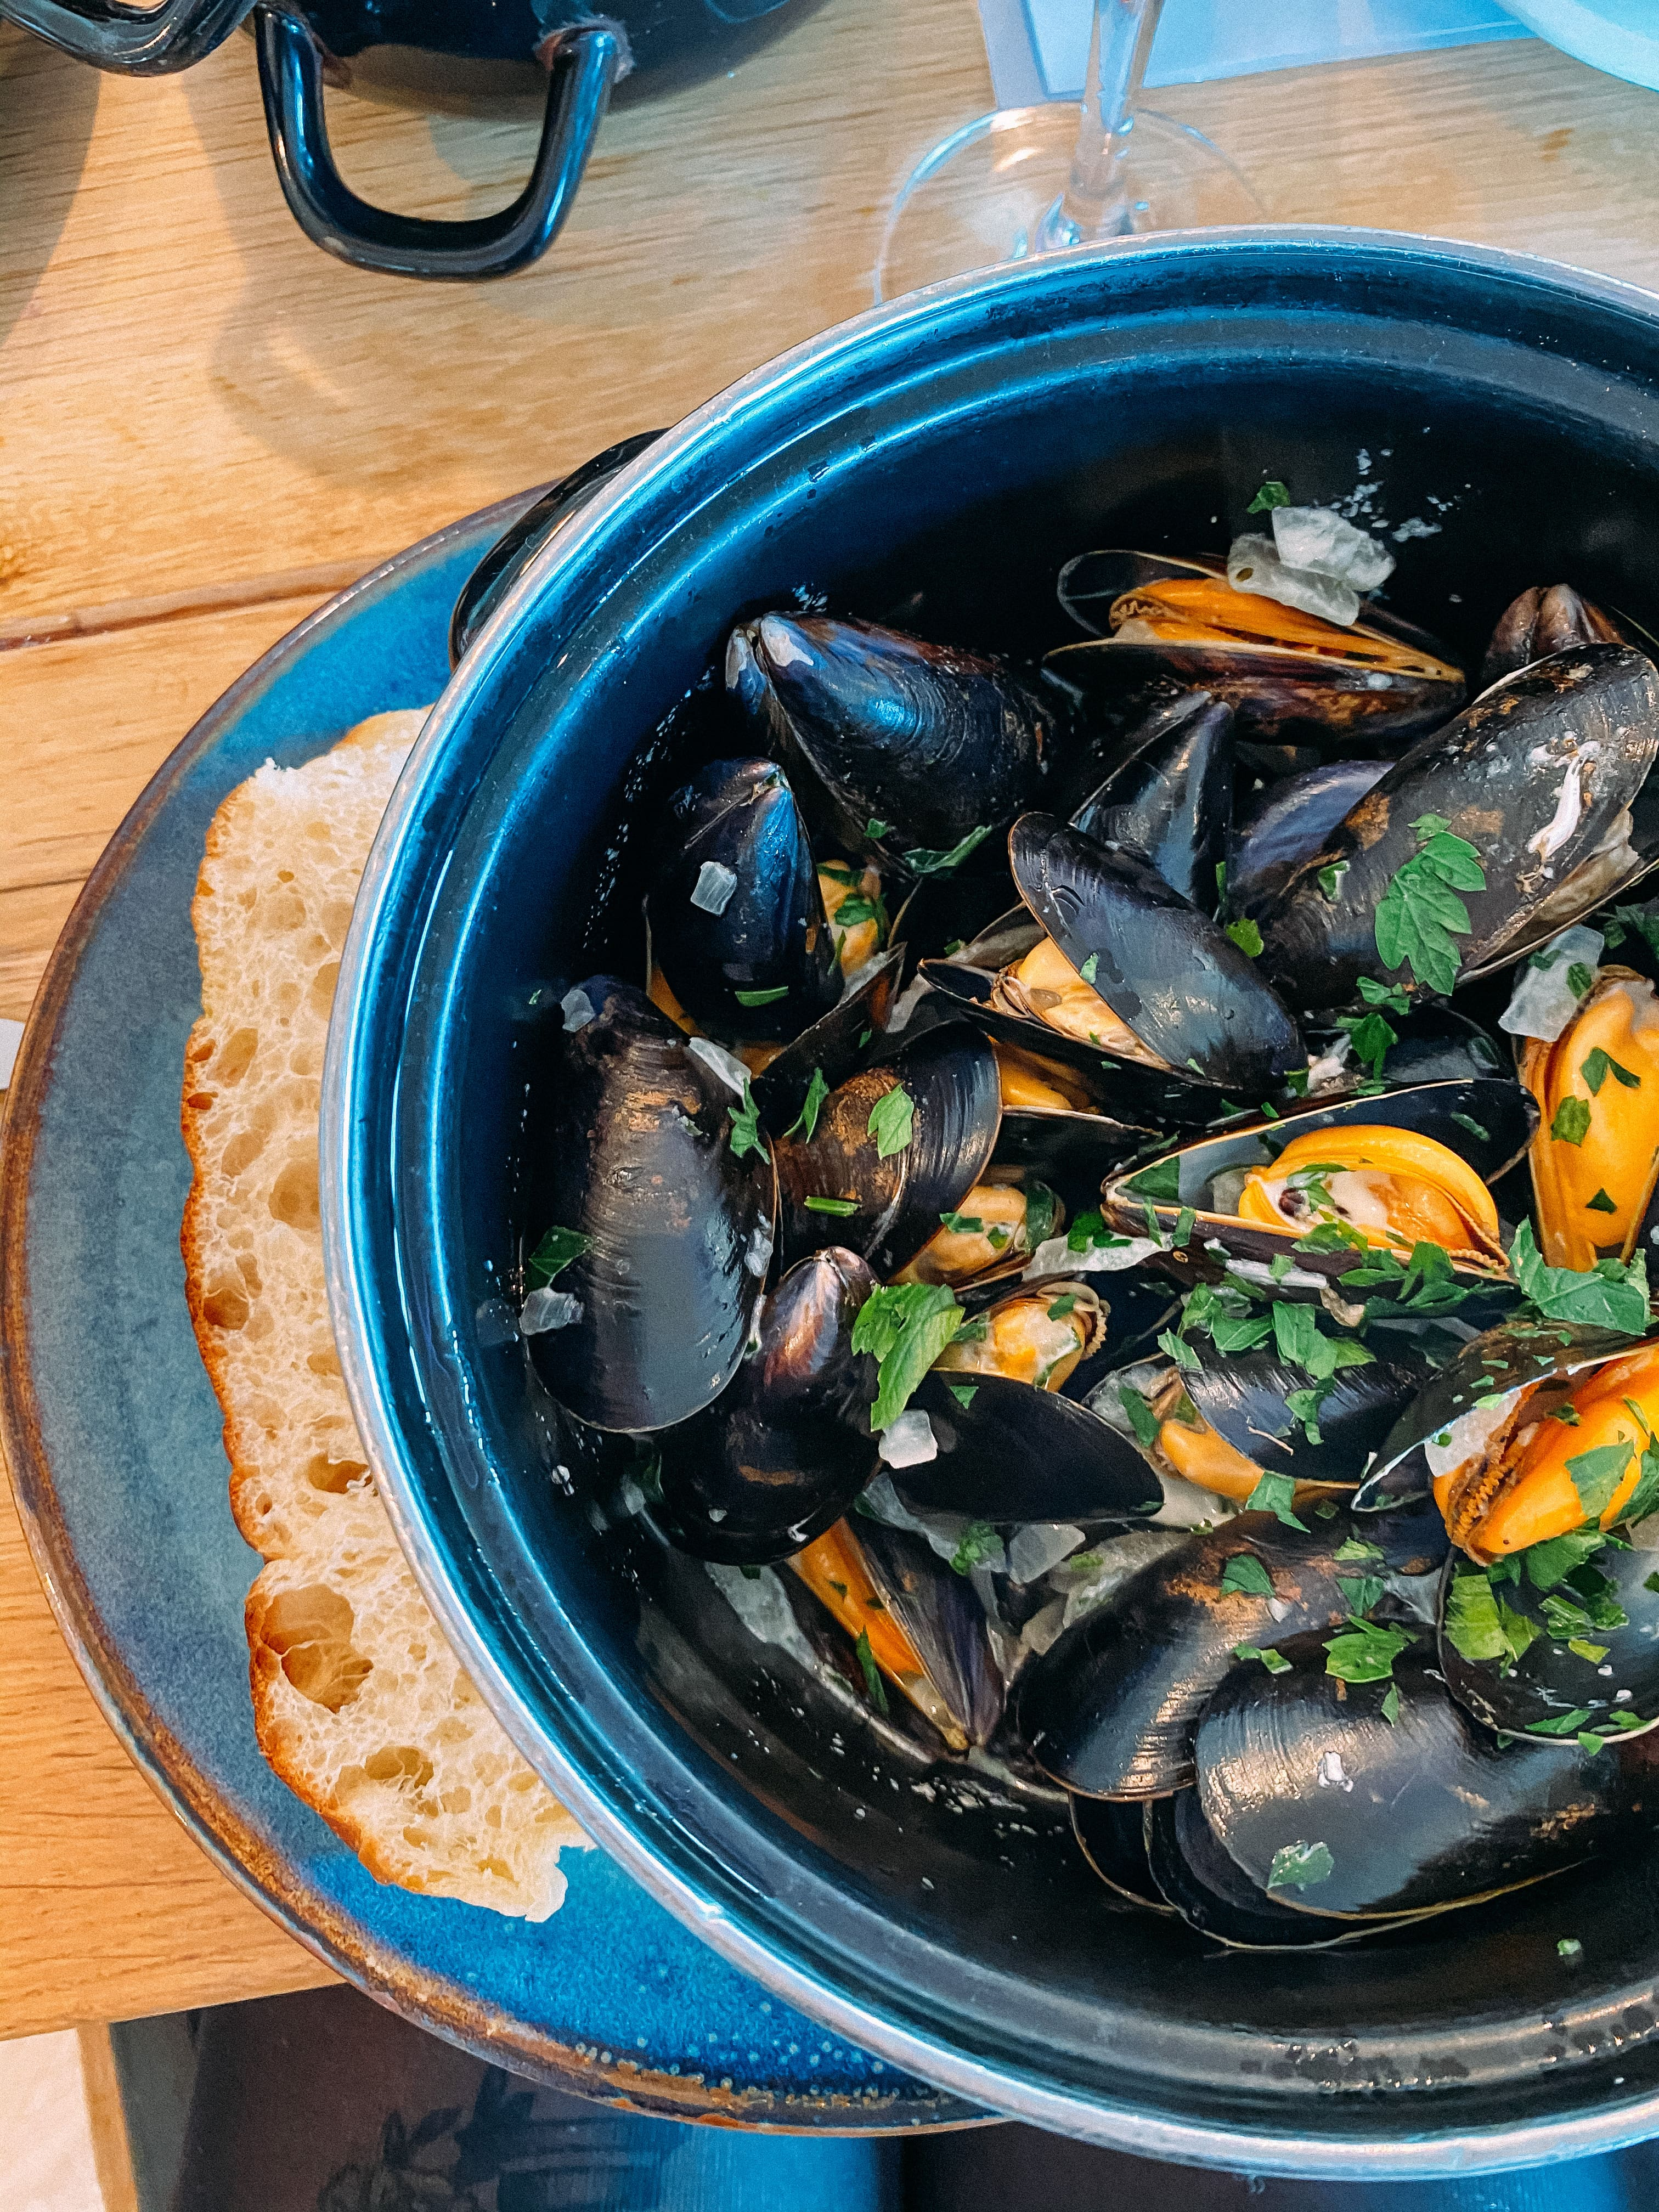 Mussells from Lewinnick Lodge in Newquay